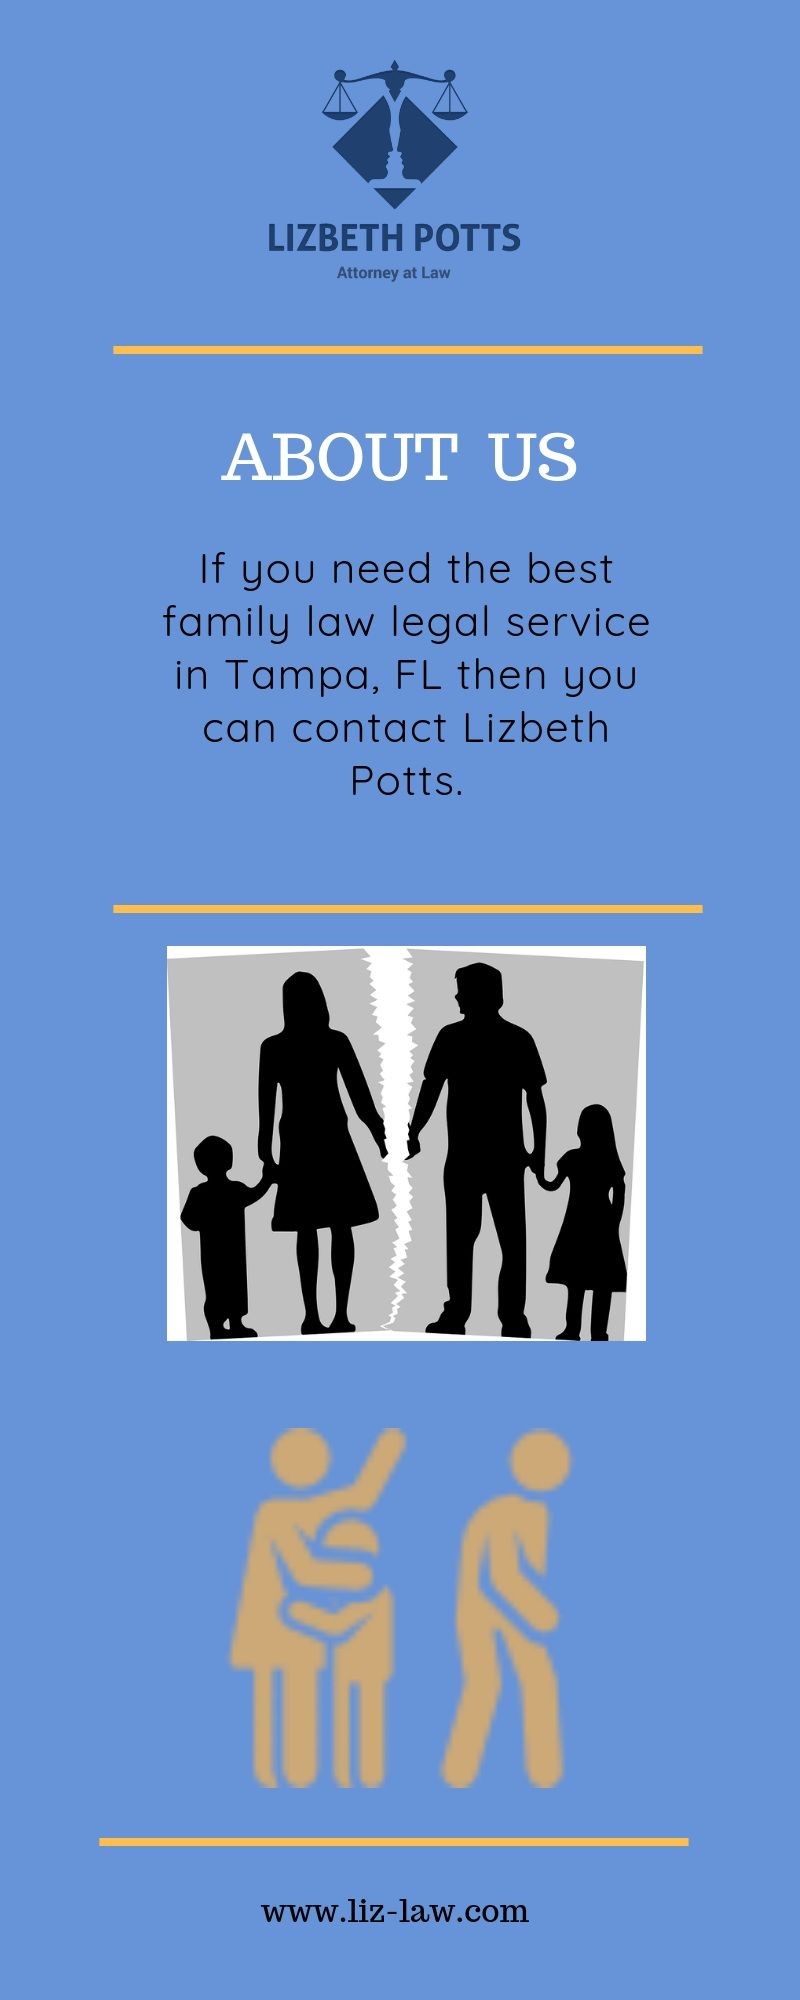 Do you need a Tampa divorce attorney? Contact Lizbeth